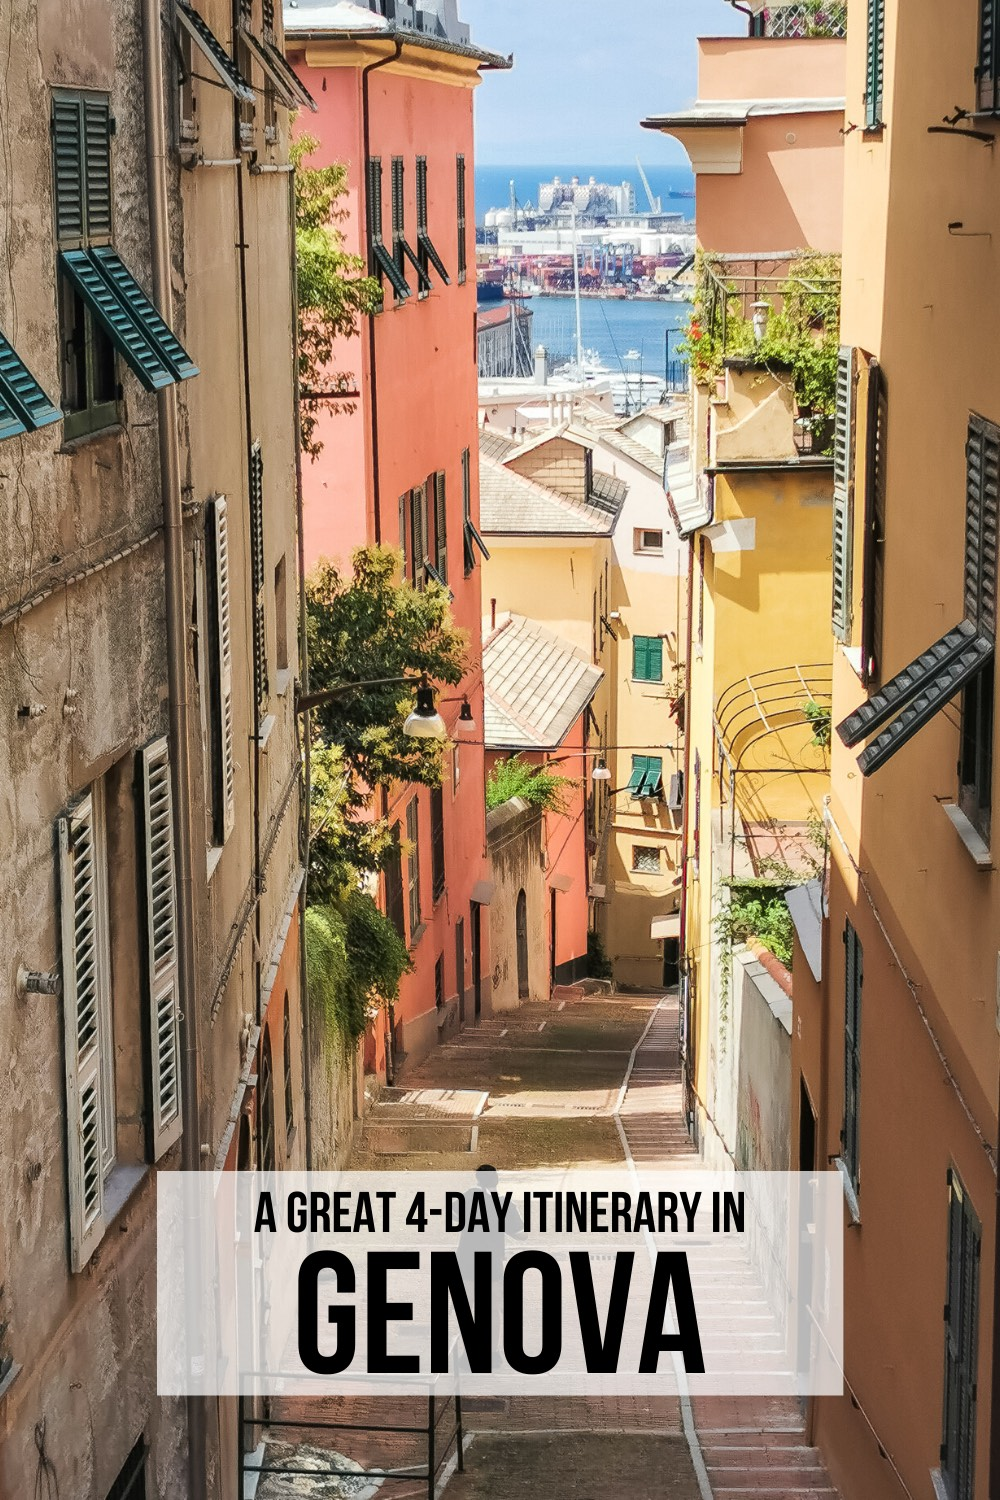 A great 4-day itinerary to visit Genoa